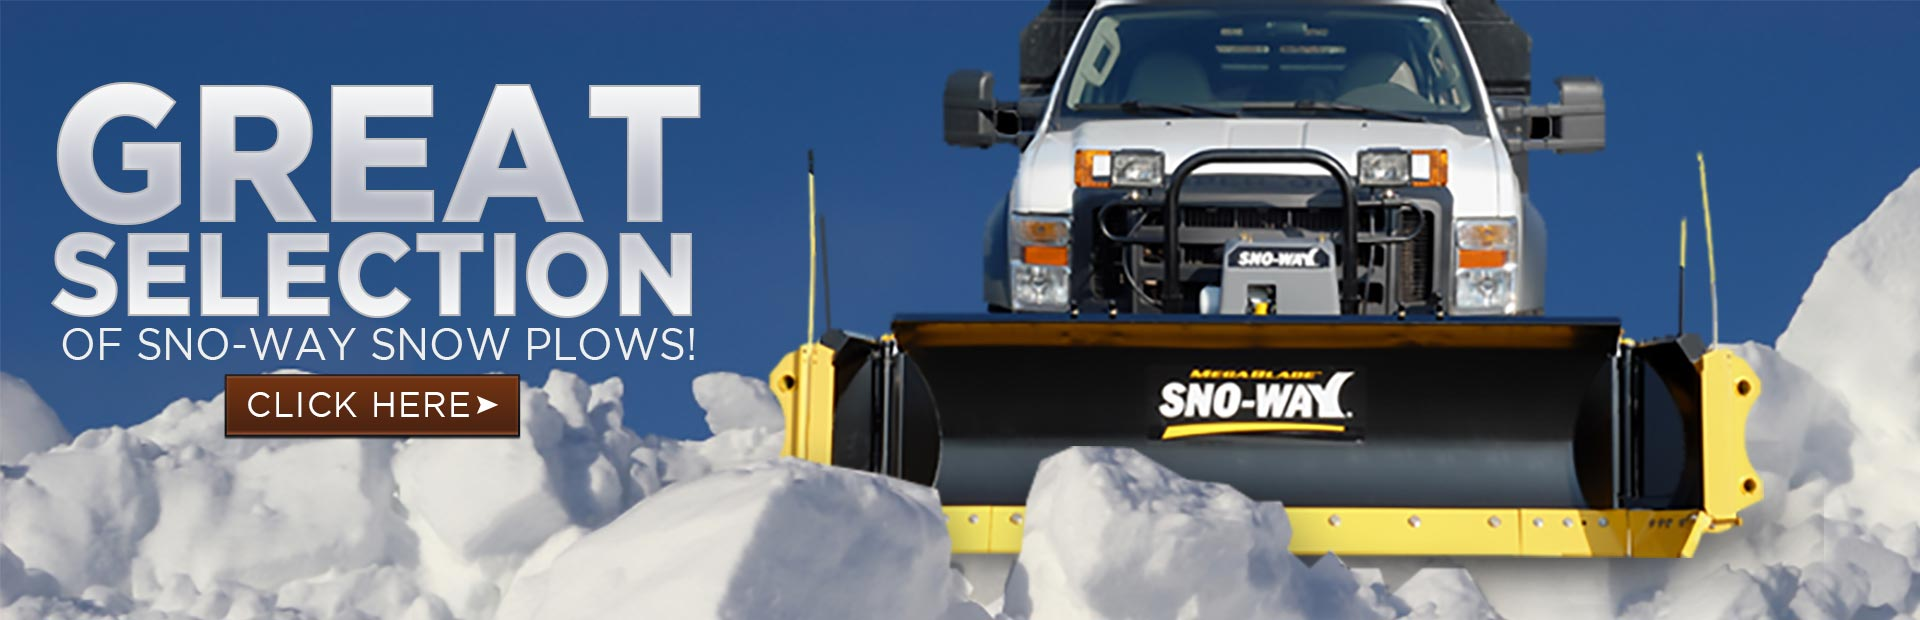 Click here to browse our great selection of Sno-Way snow plows.